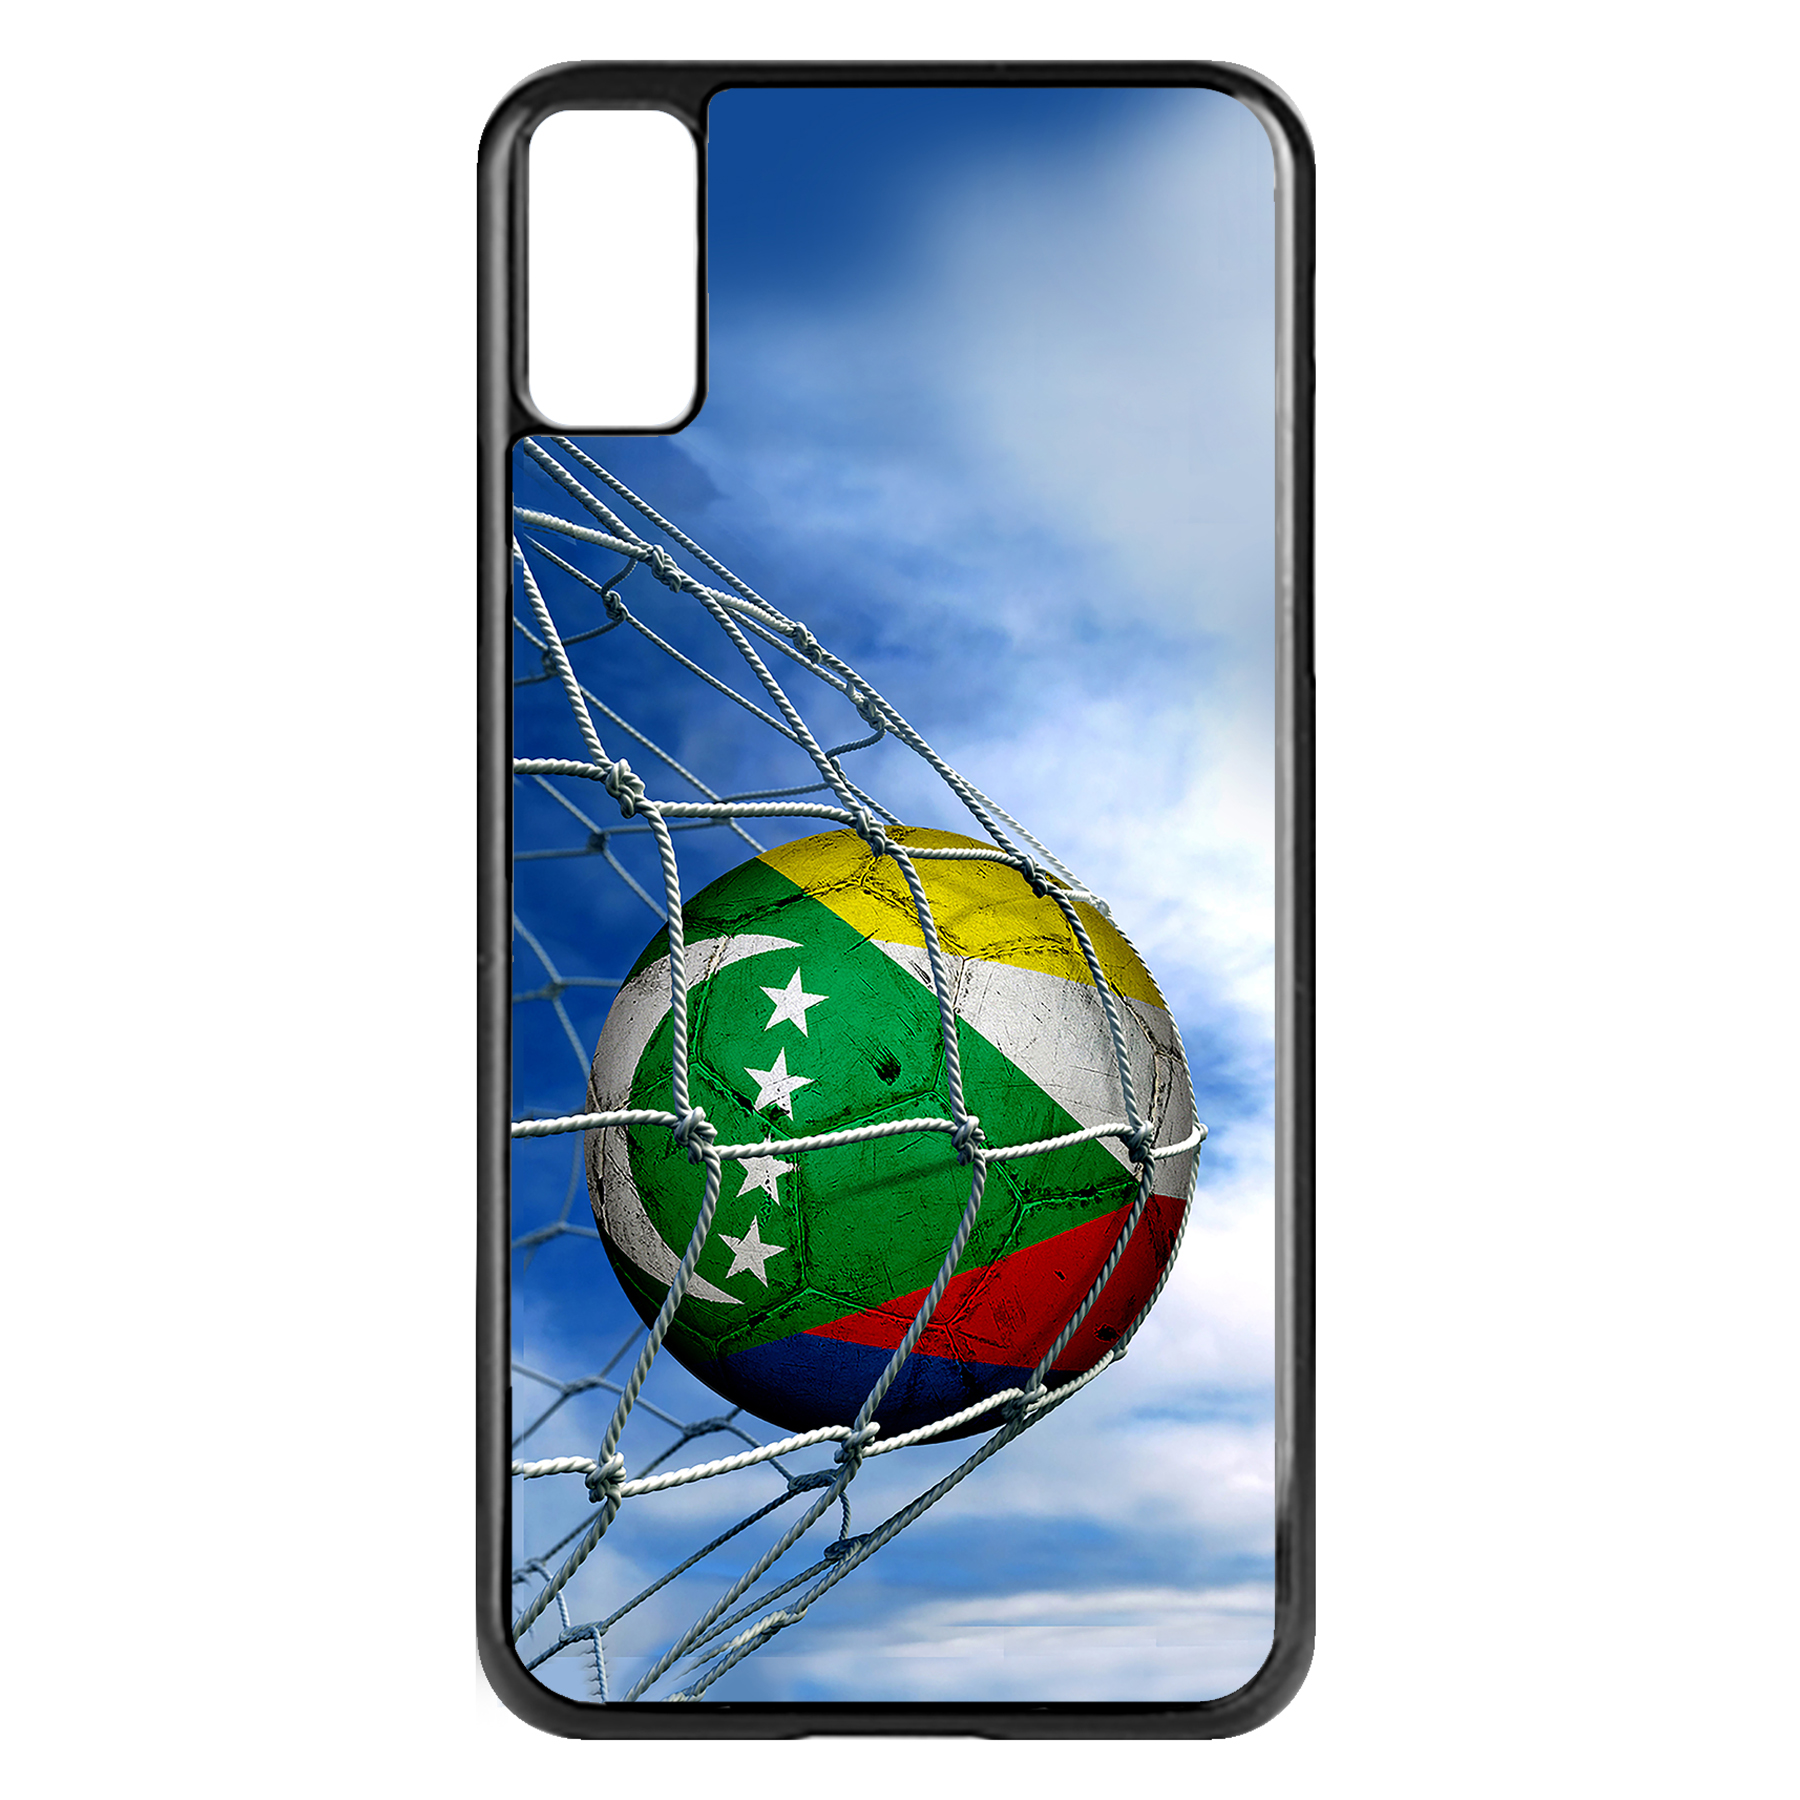 Apple-iPhone-Case-with-Flag-of-Comoros-Comorian-Many-Design-Options thumbnail 92